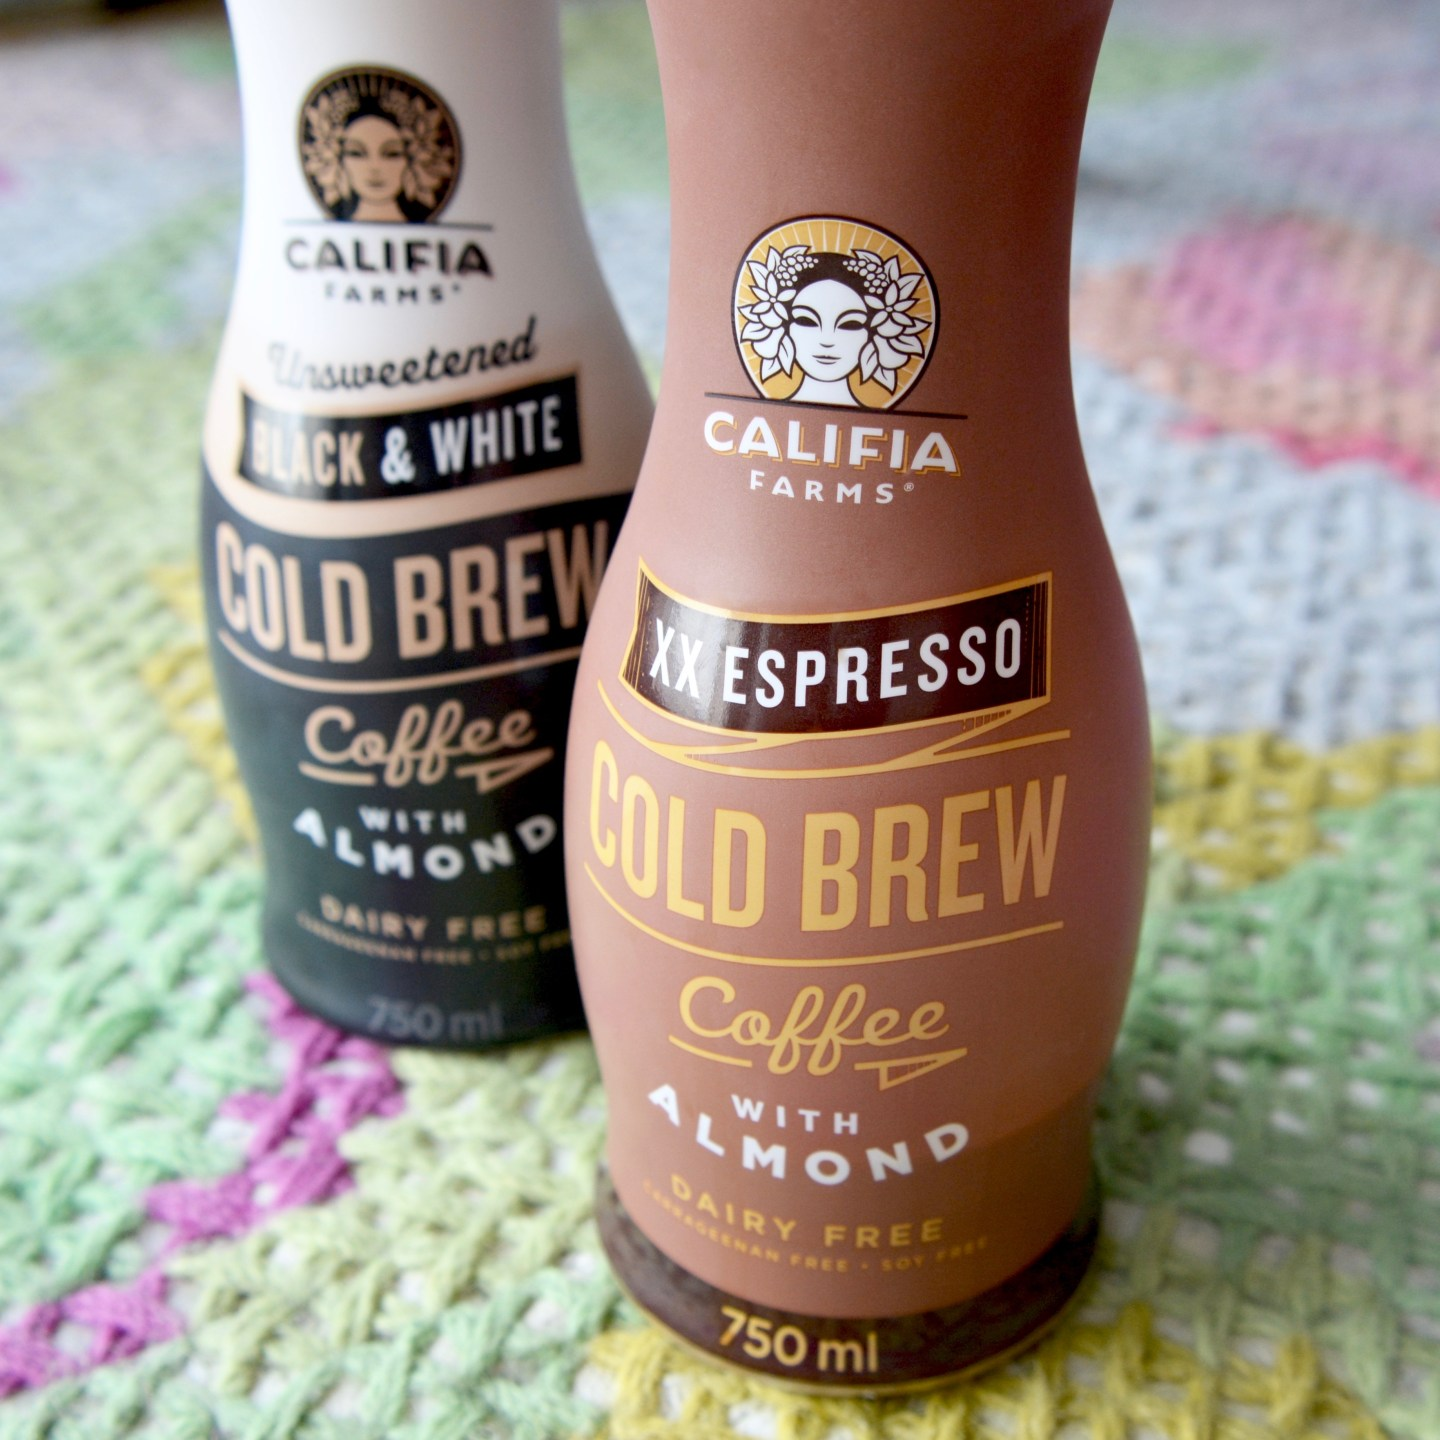 Califia cold brew coffee comes to the UK and it is GLORIOUS